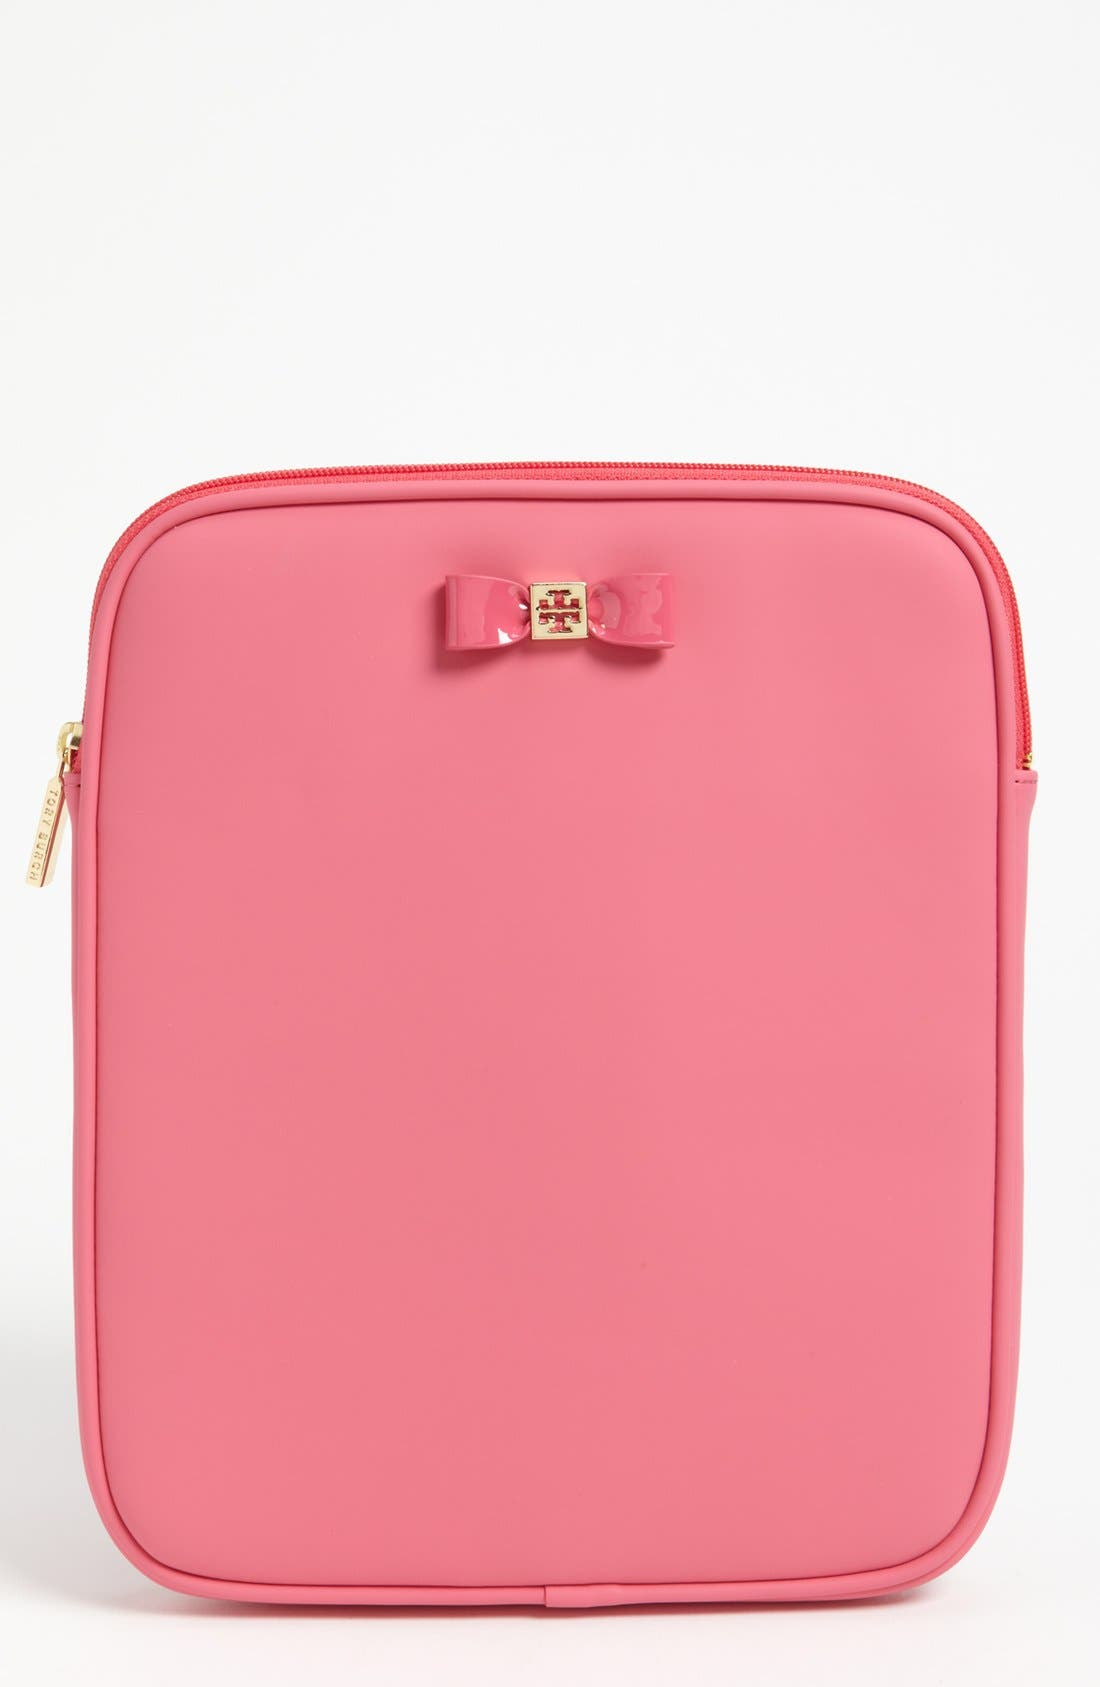 Main Image - Tory Burch 'Bow' Tablet Sleeve